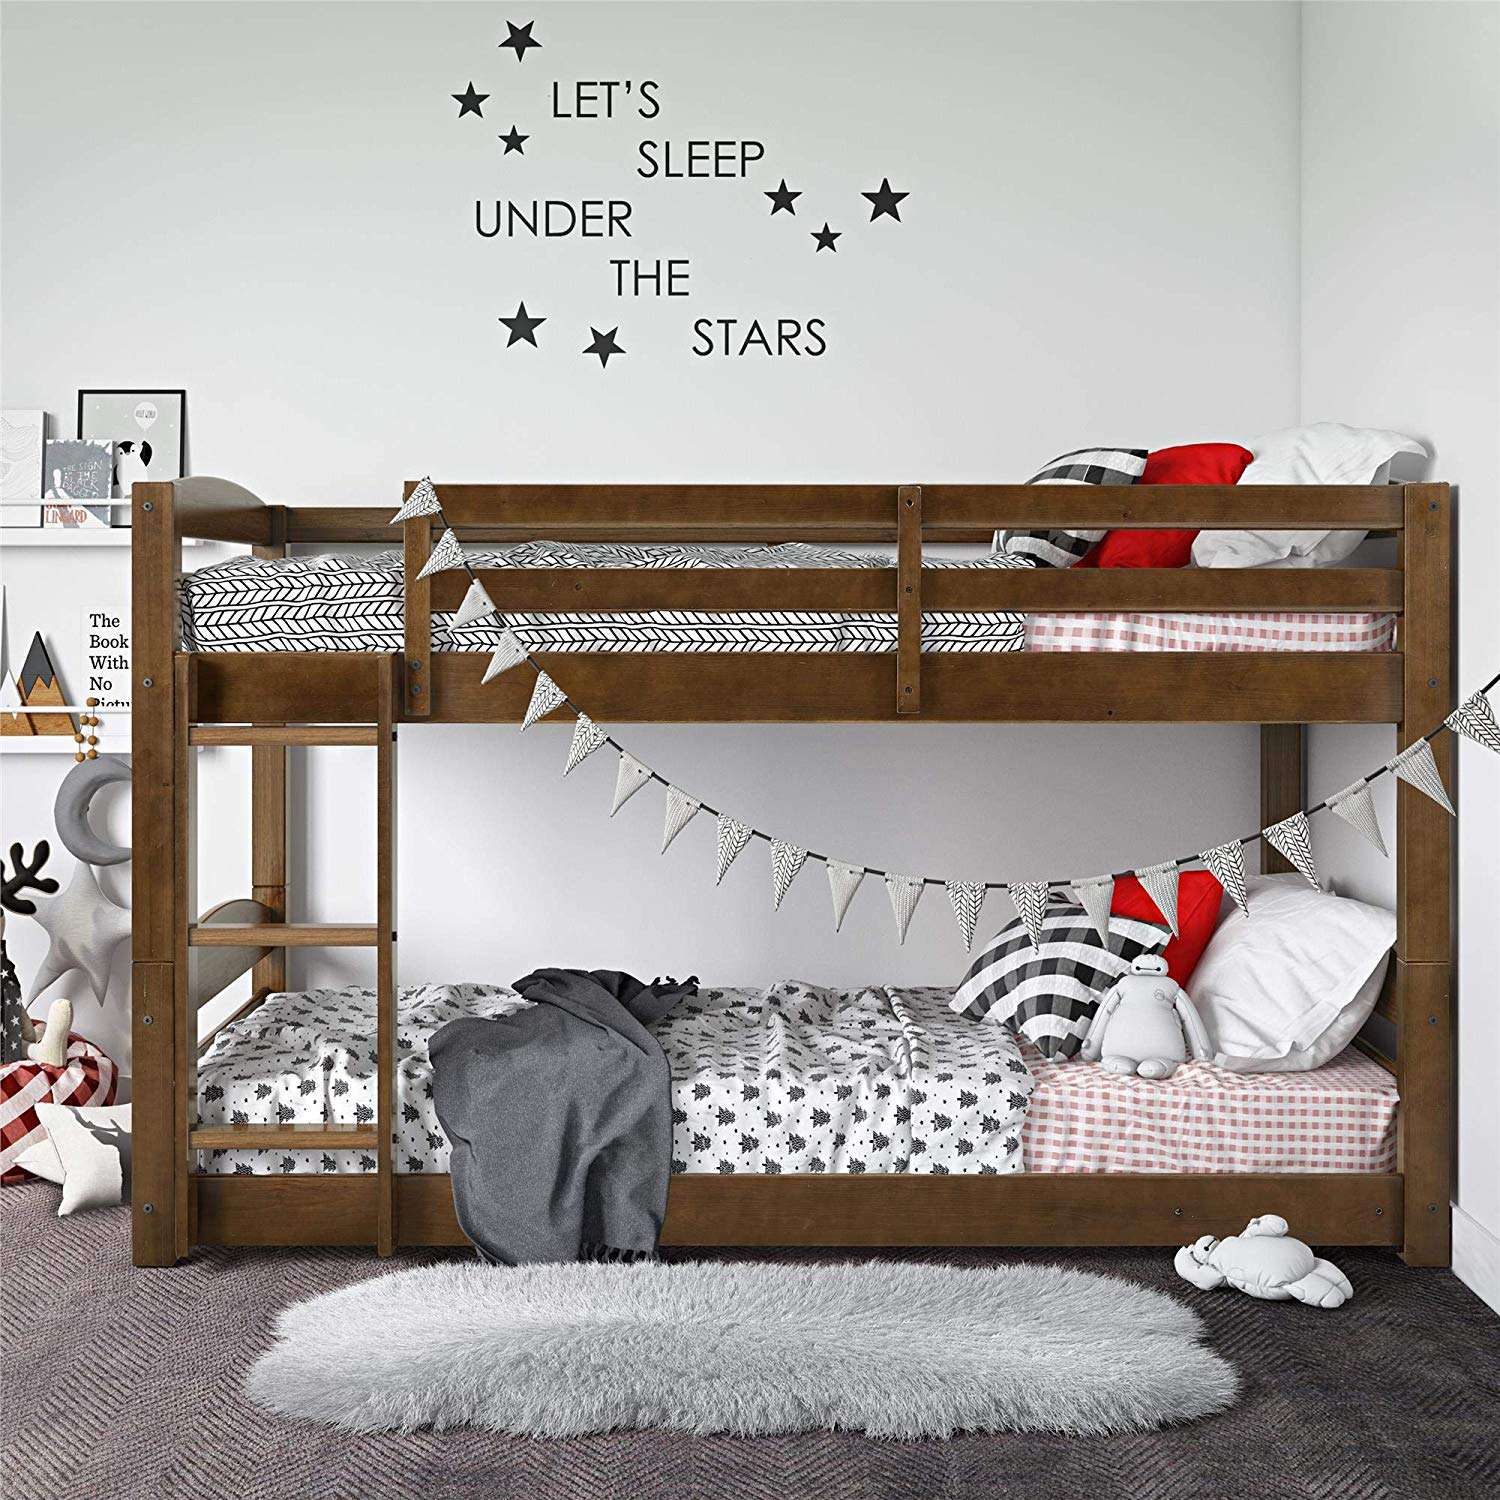 Review of Dorel Living Phoenix Solid Wood Twin over Twin Floor Bunk Beds with Ladder and Guard Rail